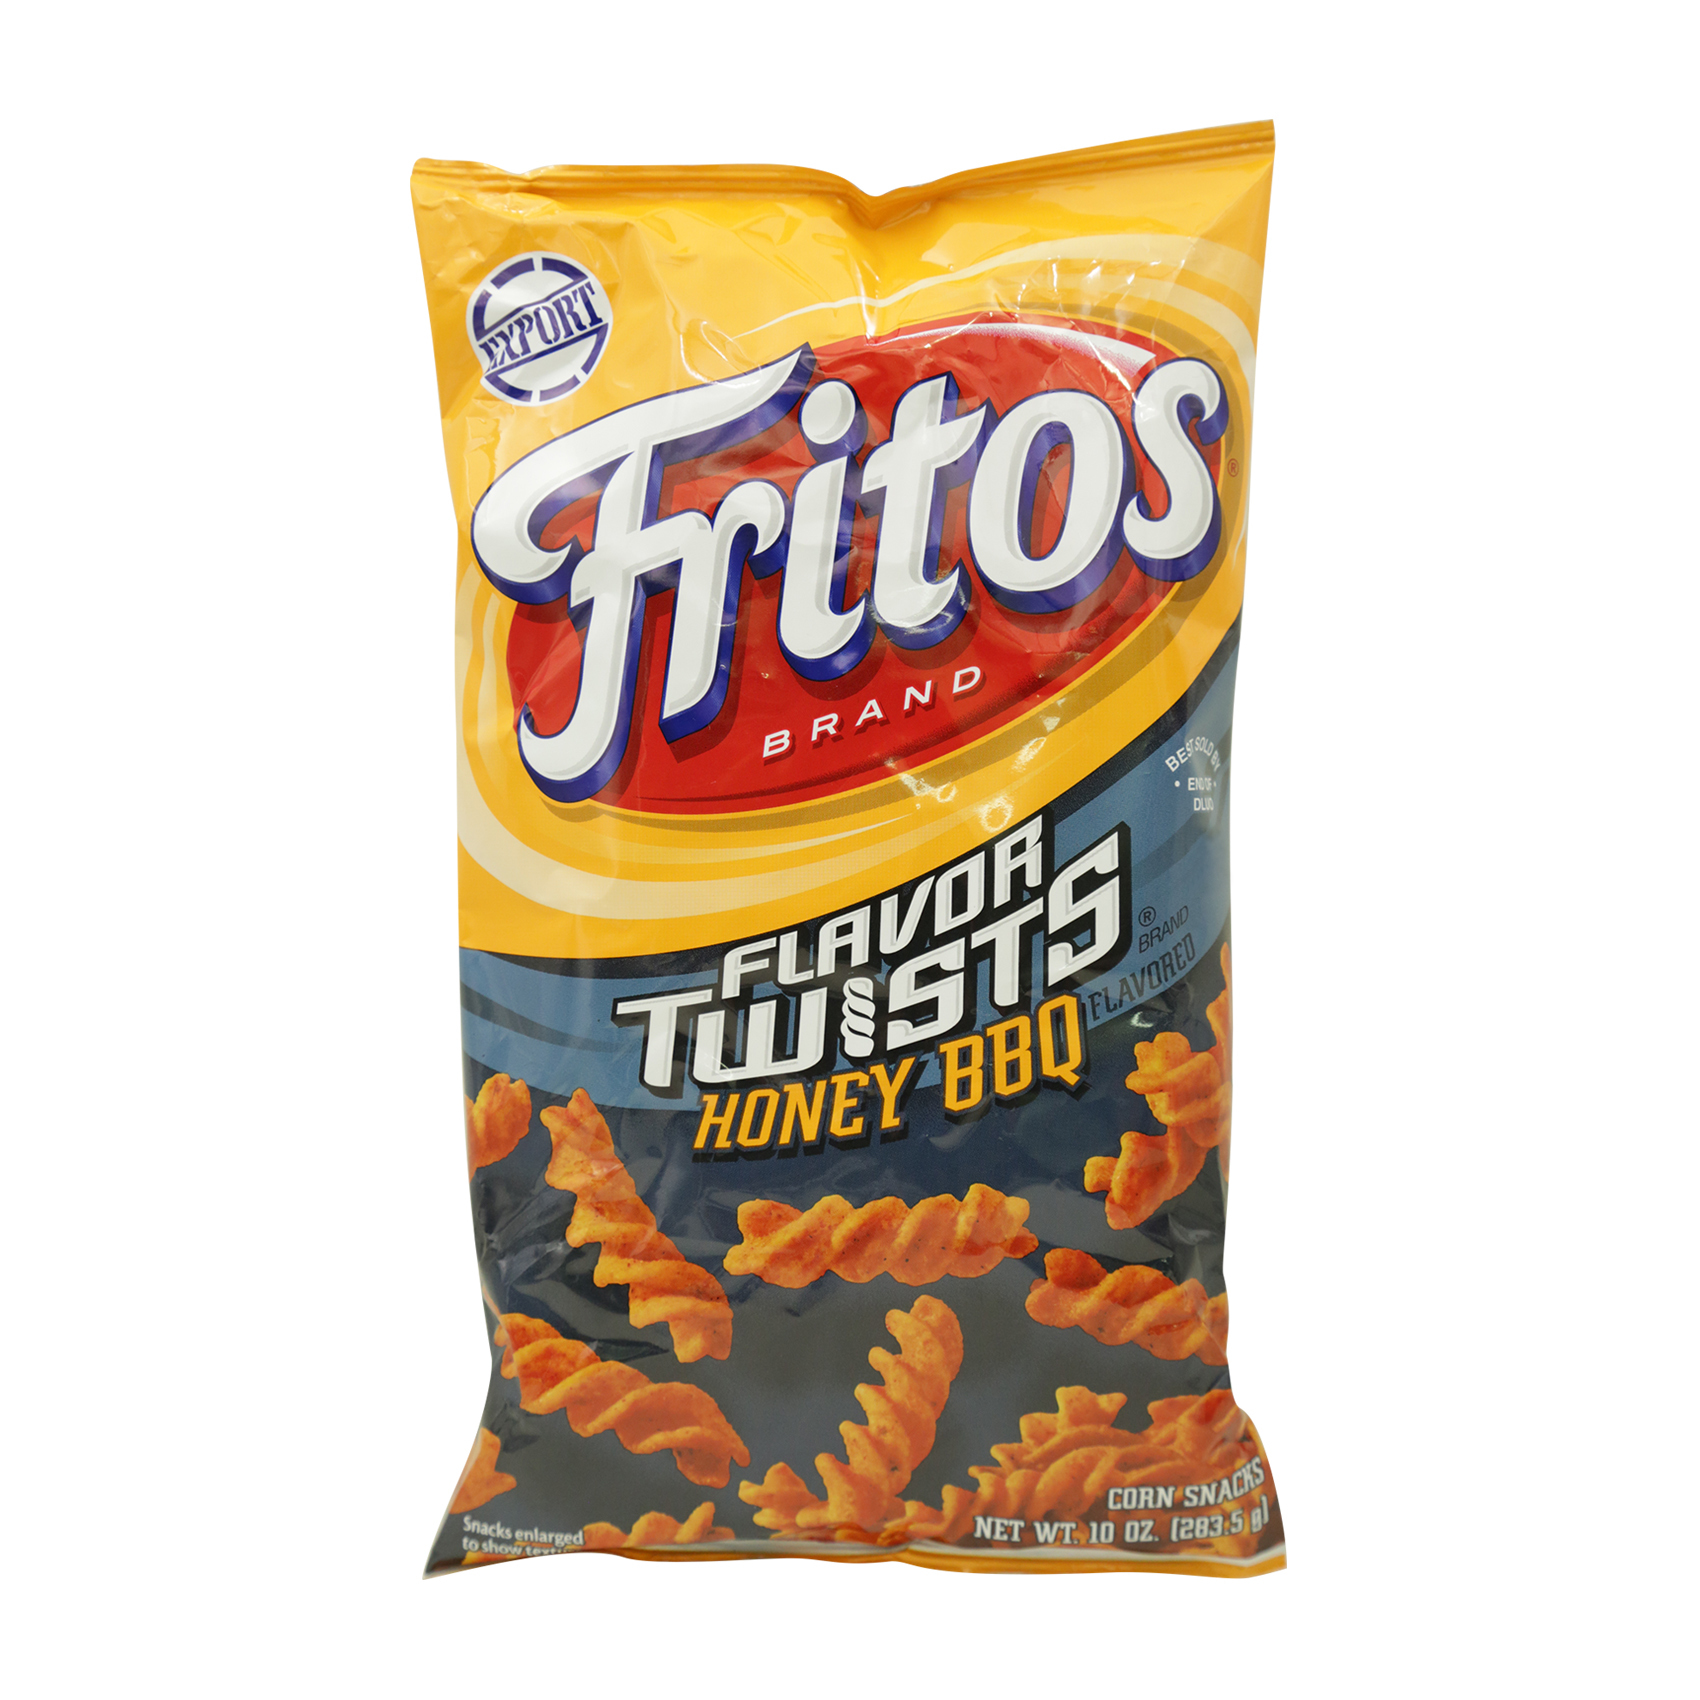 FRITOS HONEY BBQ TWISTED 283G